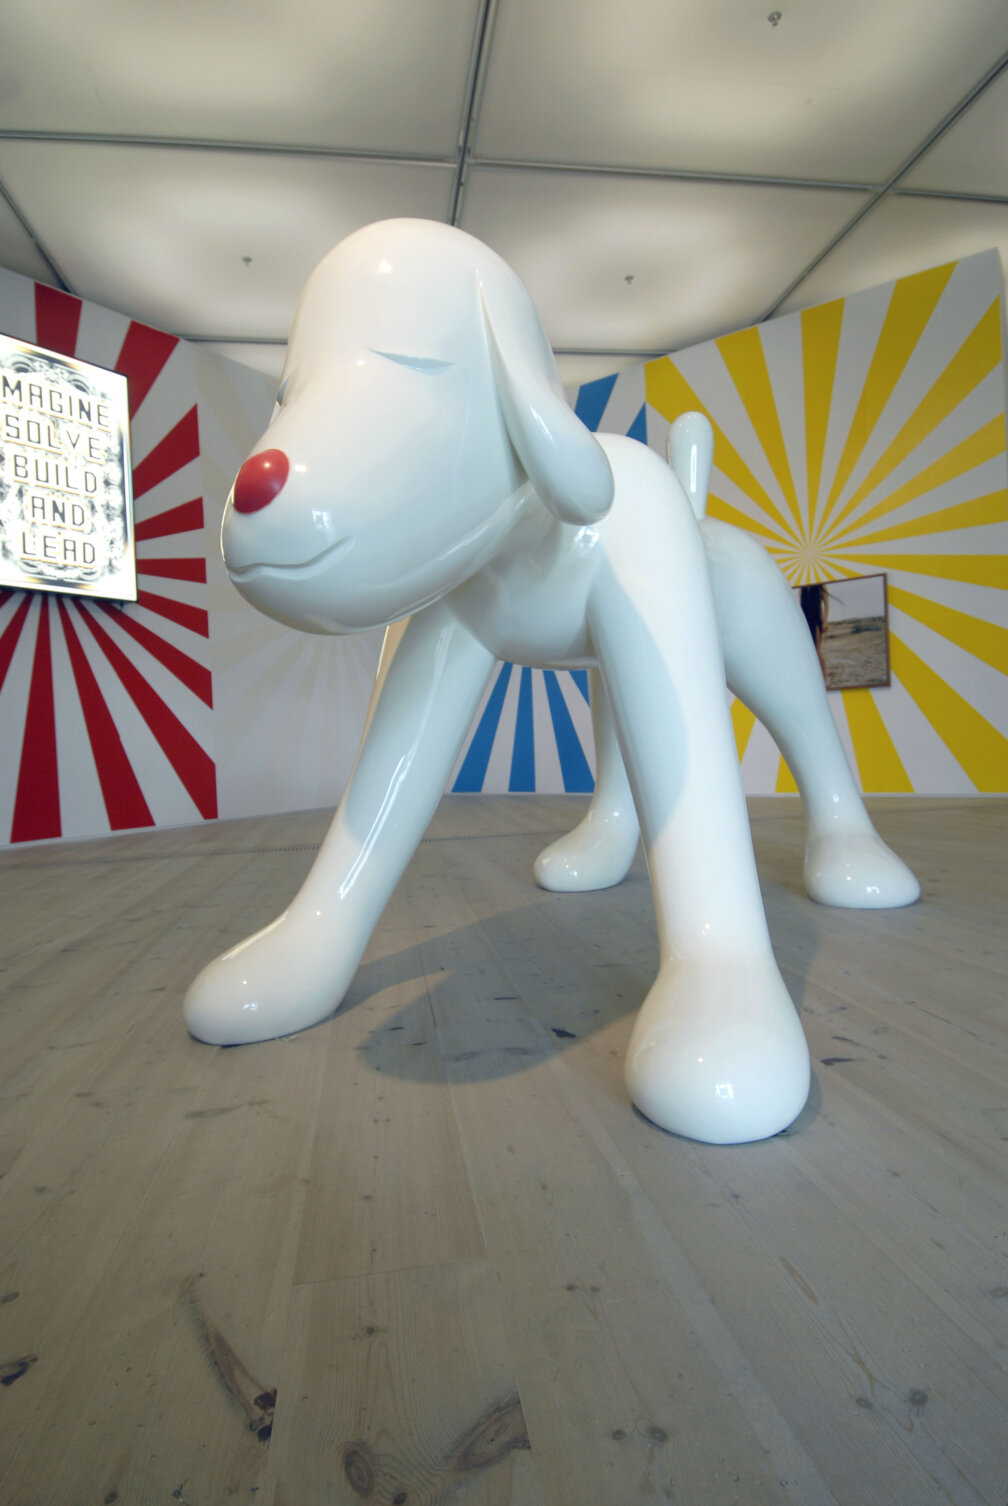 Yoshitomo Nara's Travelling Exhibition Opens at Kaohsiung Museum of Fine Arts in Taiwan